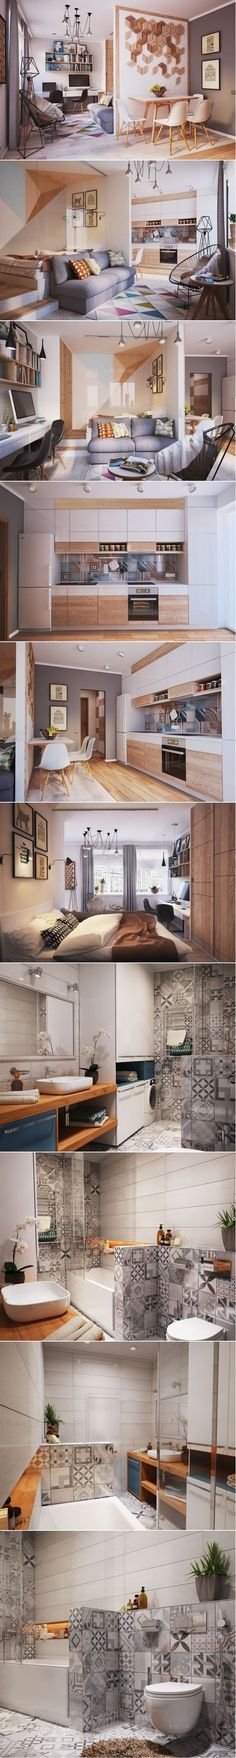 Studio apartment design ideas 500 square feet new living small with style 2 beautiful small apartment plans under Small Apartment Plans, Modern Apartment Decor, Studio Apartment Design, Small Apartment Interior, Apartment Ideas, Apartment Plants, Colorful Apartment, Studio Design, Apartment Entrance